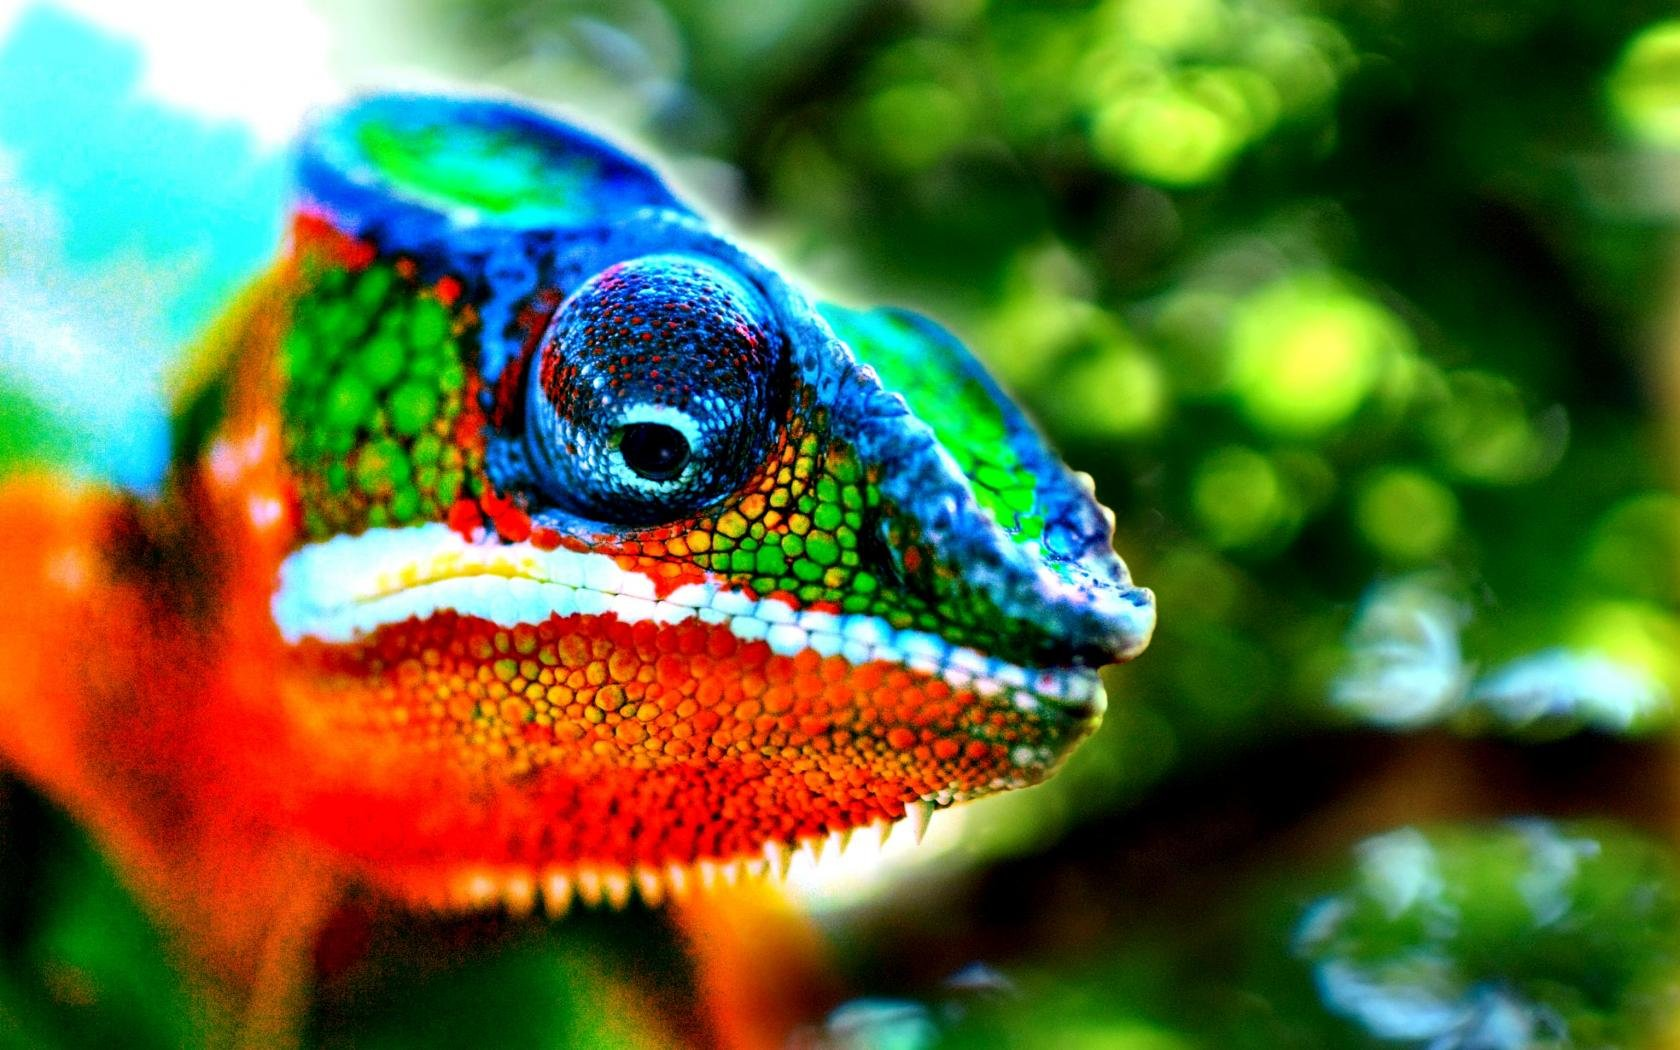 Download hd 1680x1050 Chameleon PC background ID:462615 for free